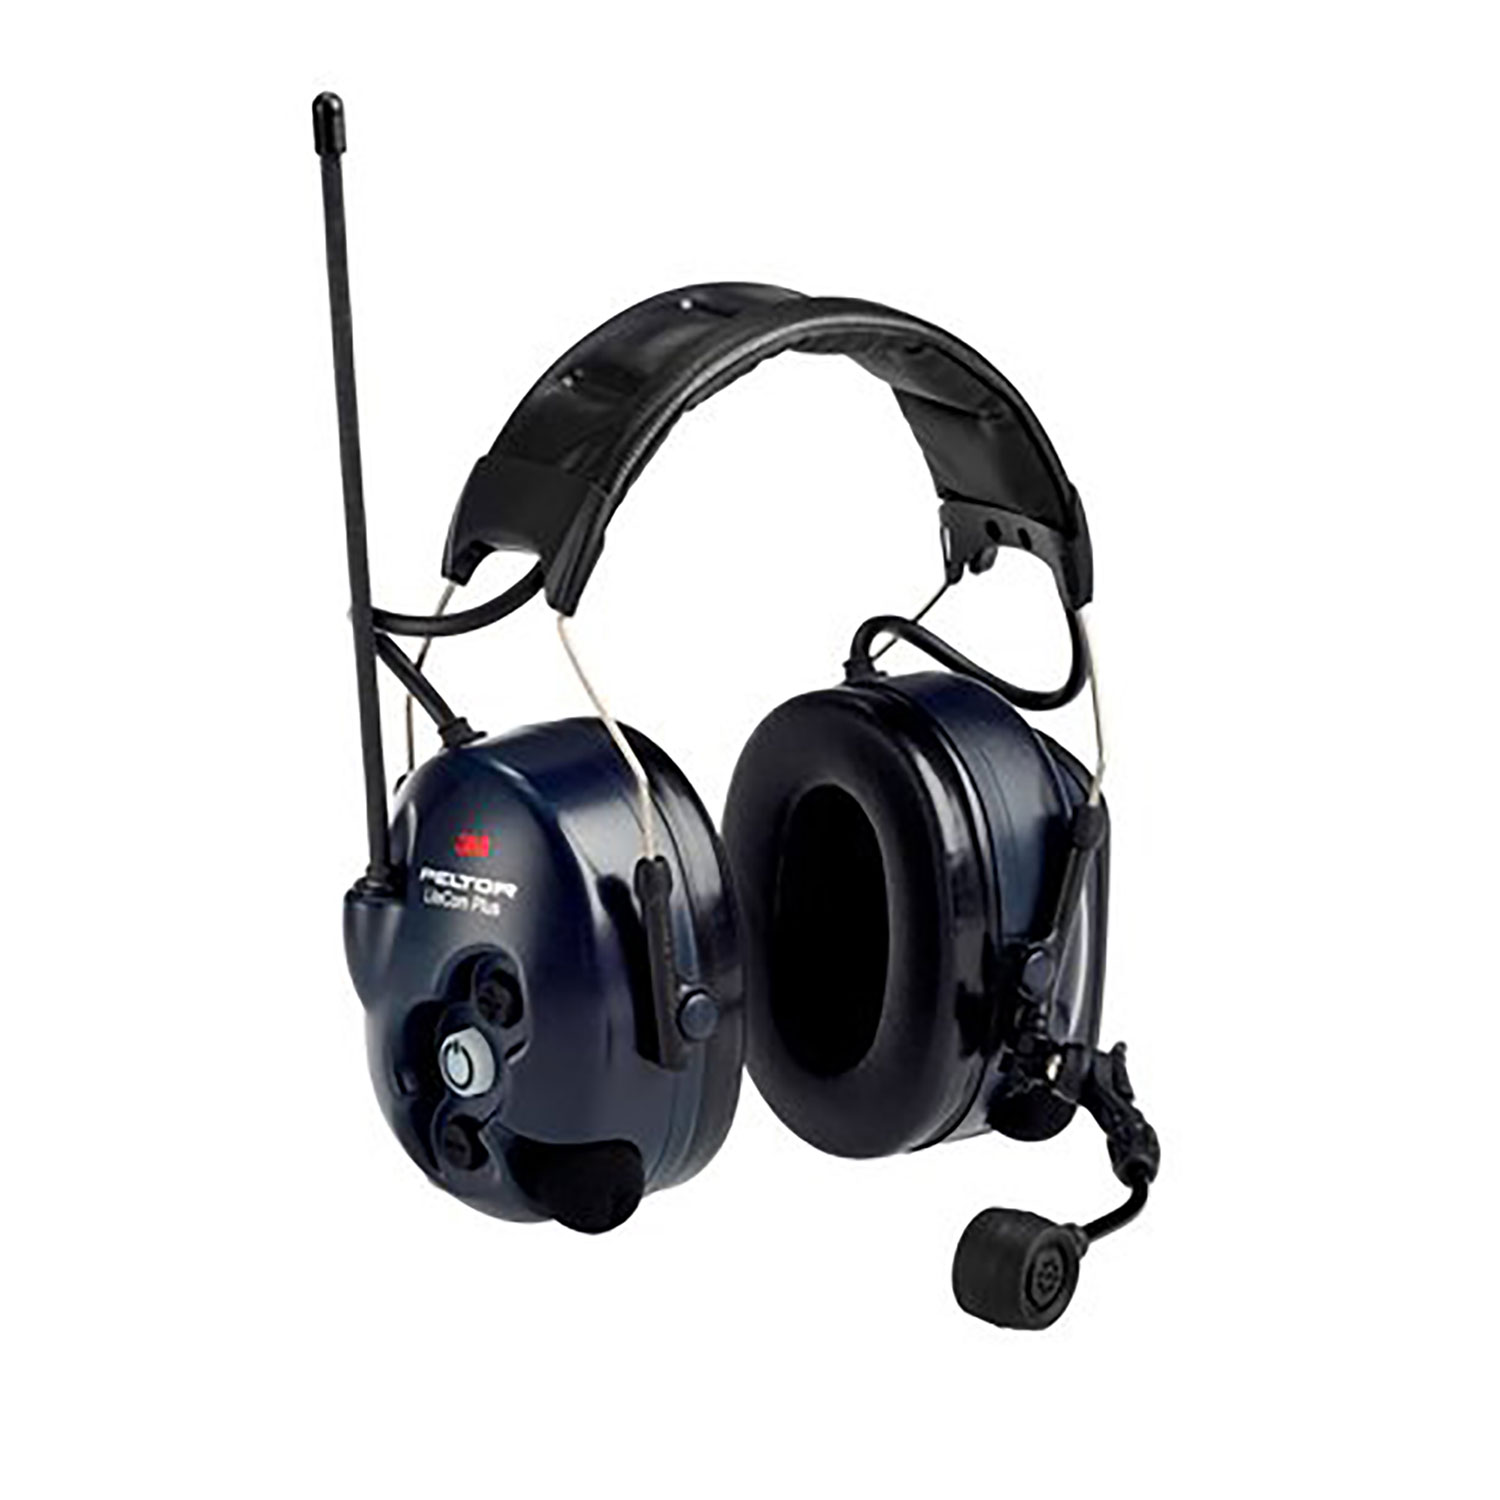 3M™ PELTOR™ LiteCom™ Two-Way Headsets3M™ PELTOR™ Lite Com™ P